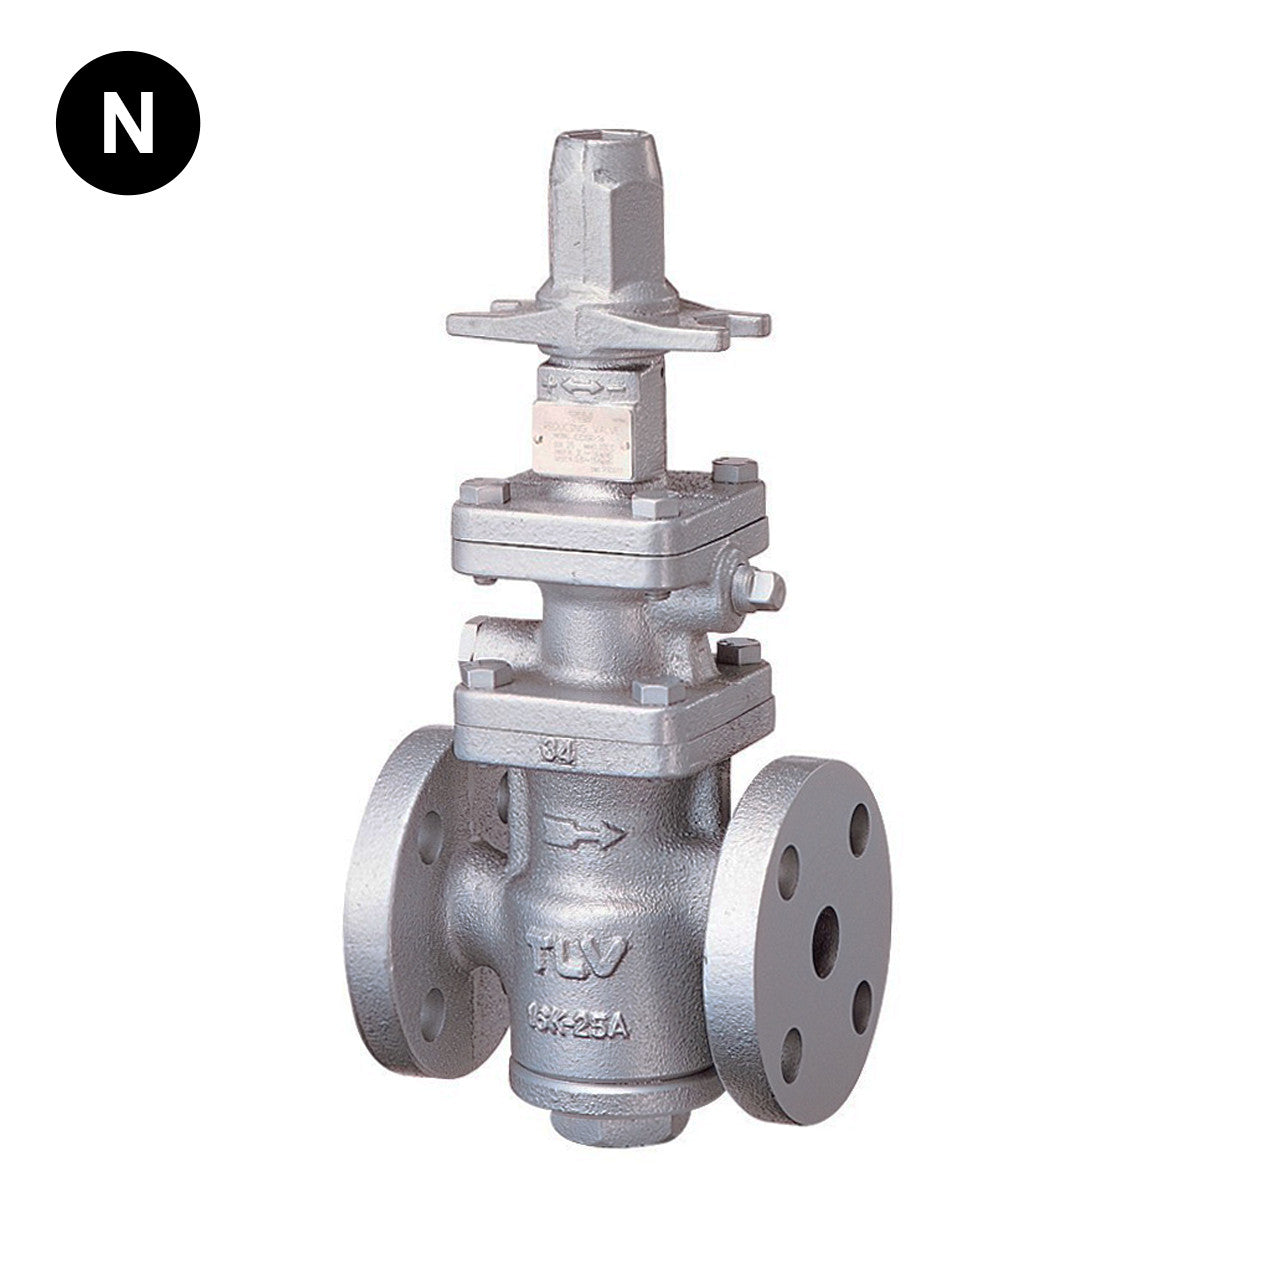 Tlv Cosr Steam Pressure Reducing Valve Flowstar Uk Limited